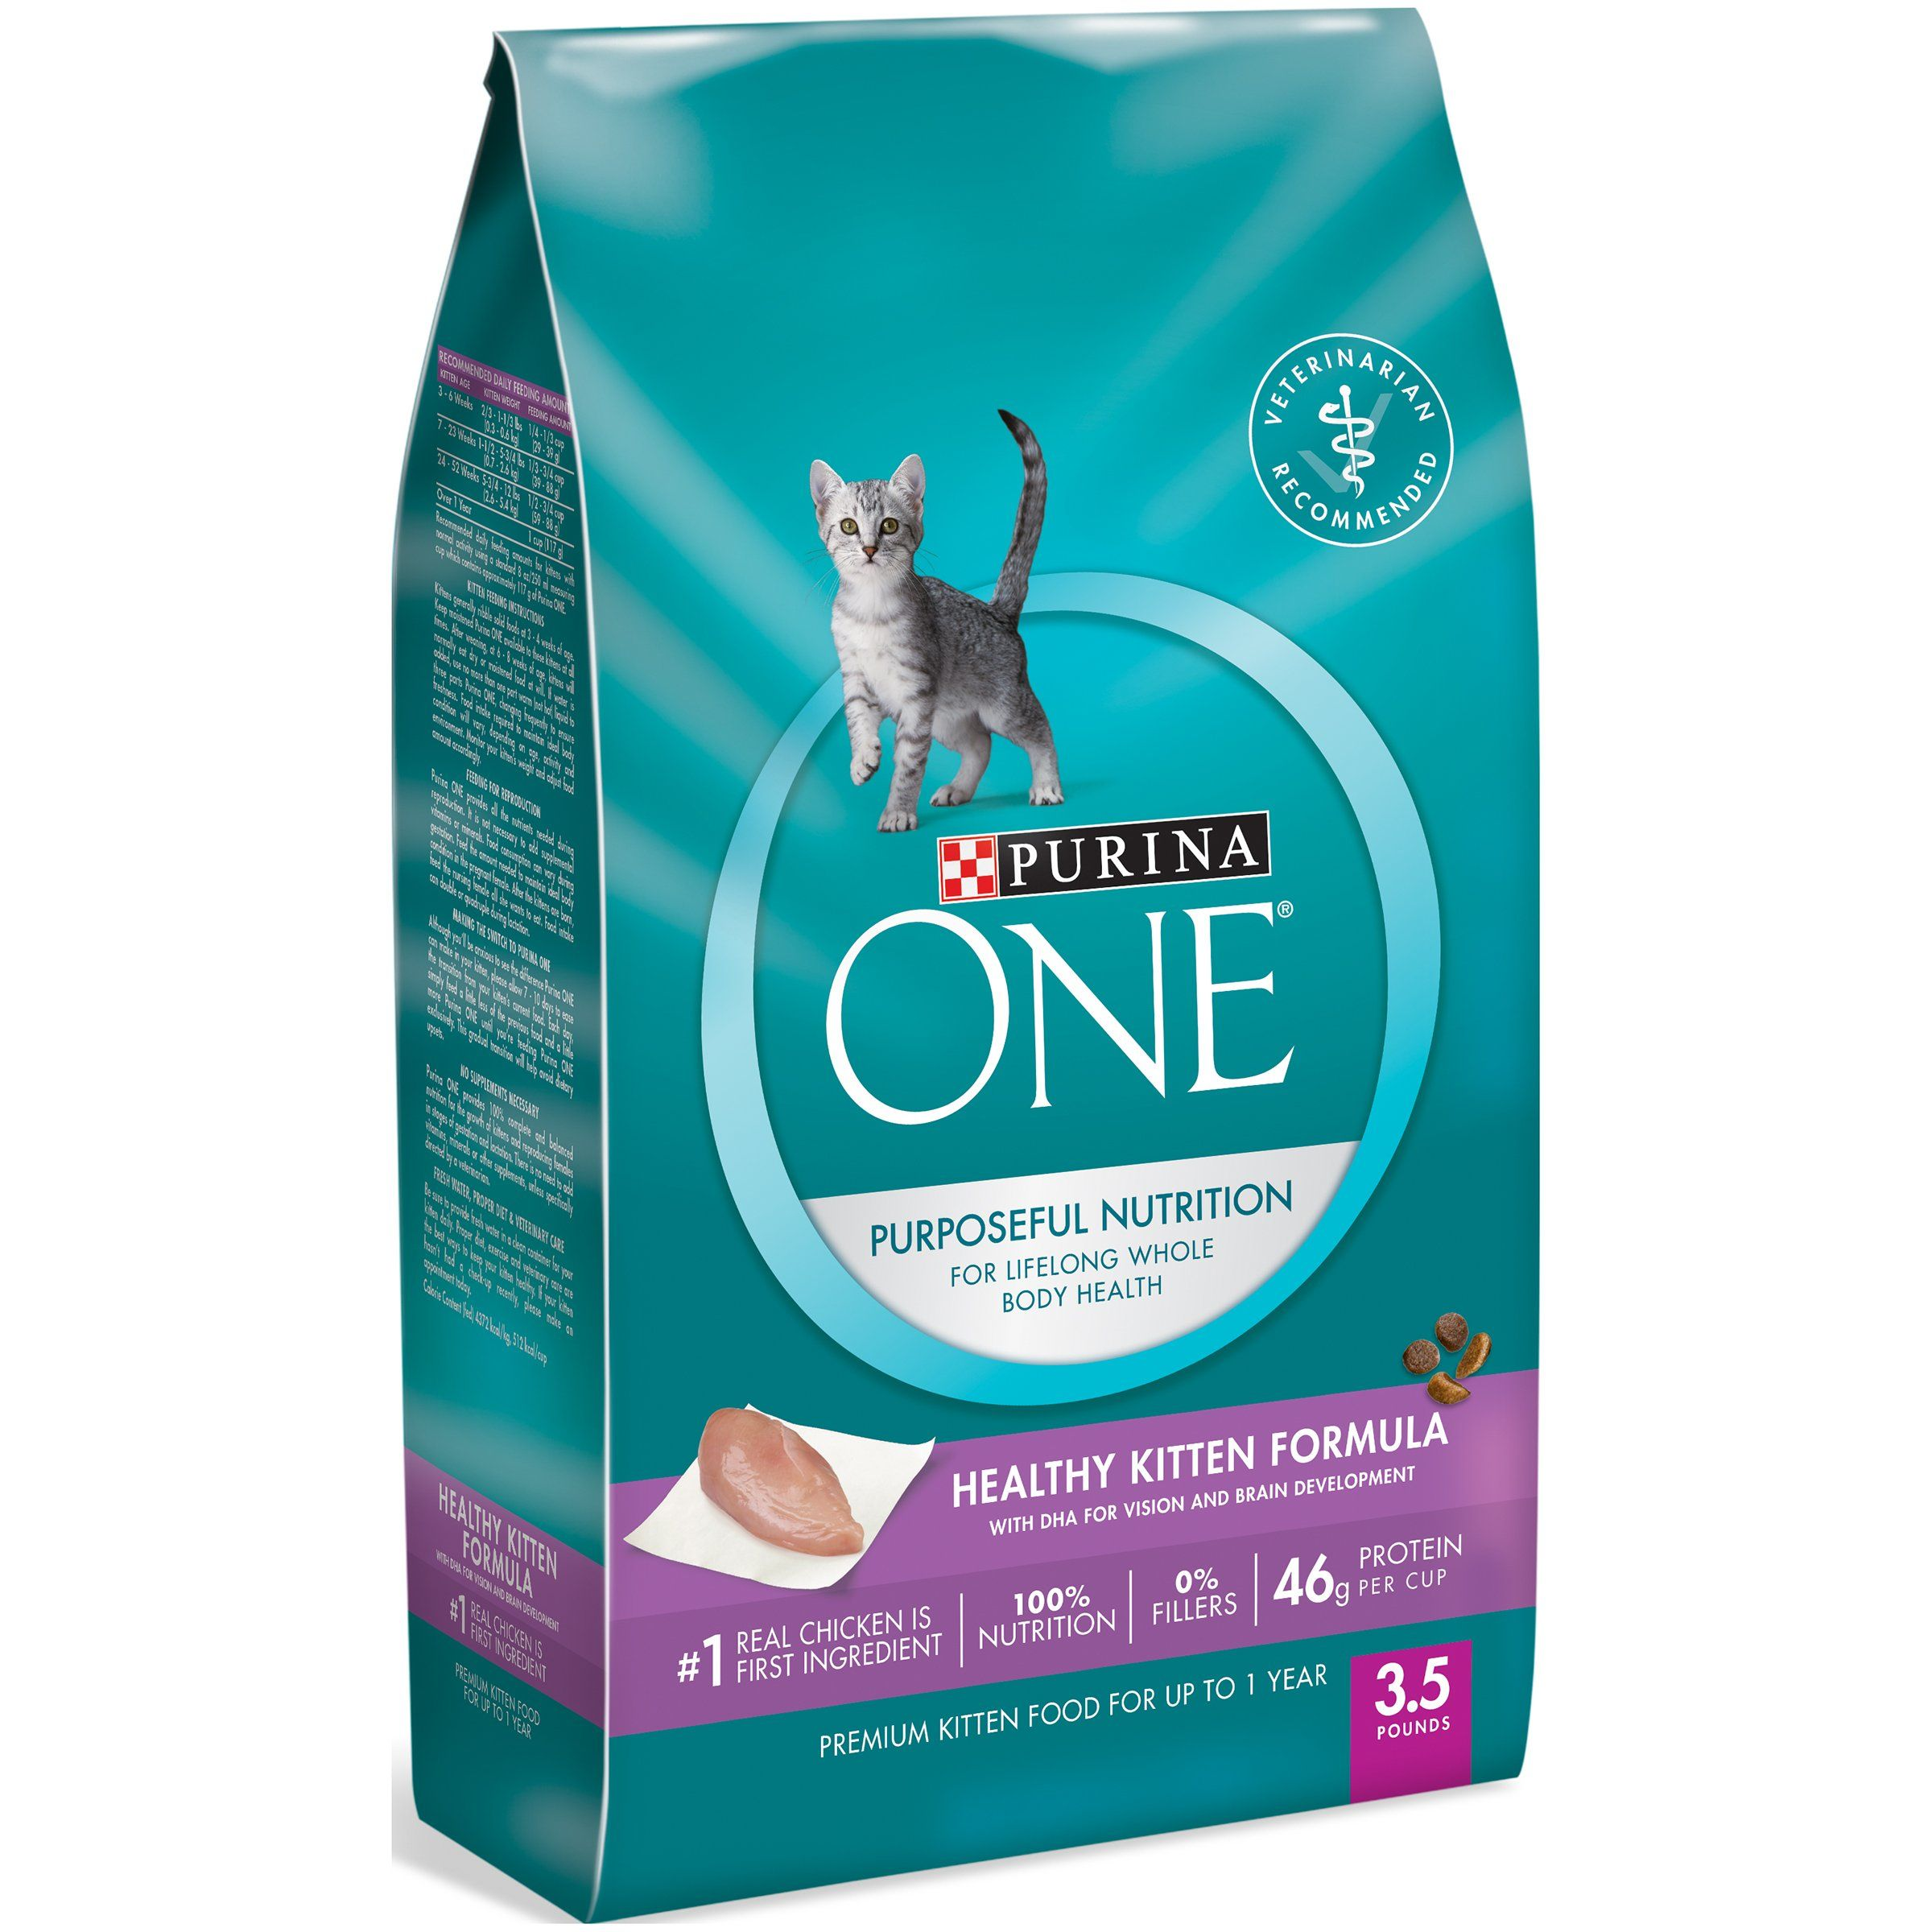 Purina One Healthy Kitten Formula Premium Dry Cat Food Find Out More Reviews Of The Product By Visiting The Link On The P Dry Cat Food Cat Food